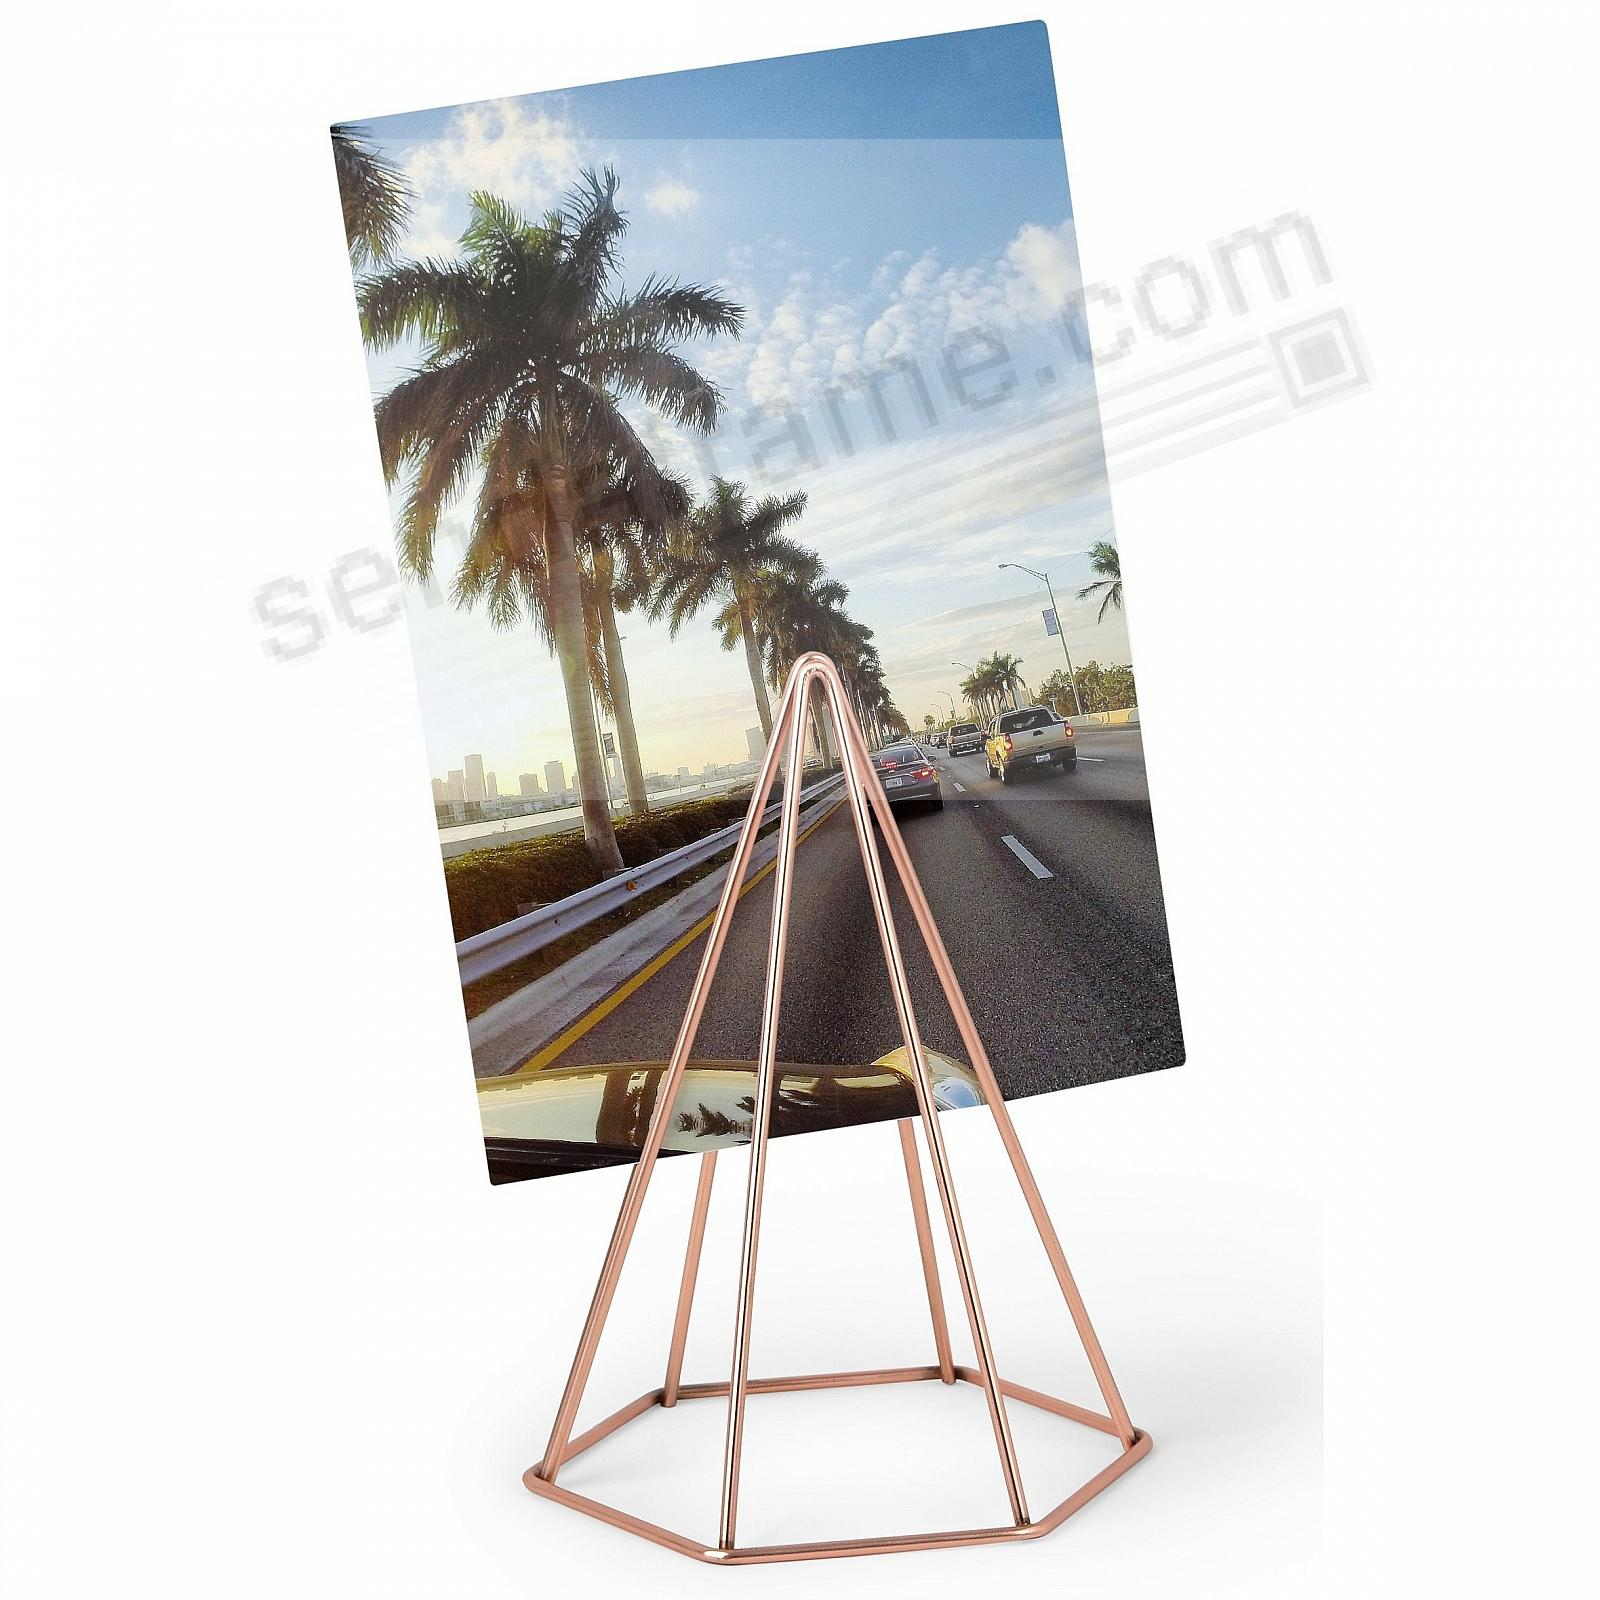 The Original PEAK Copper Photo/Memo Holder by Umbra®